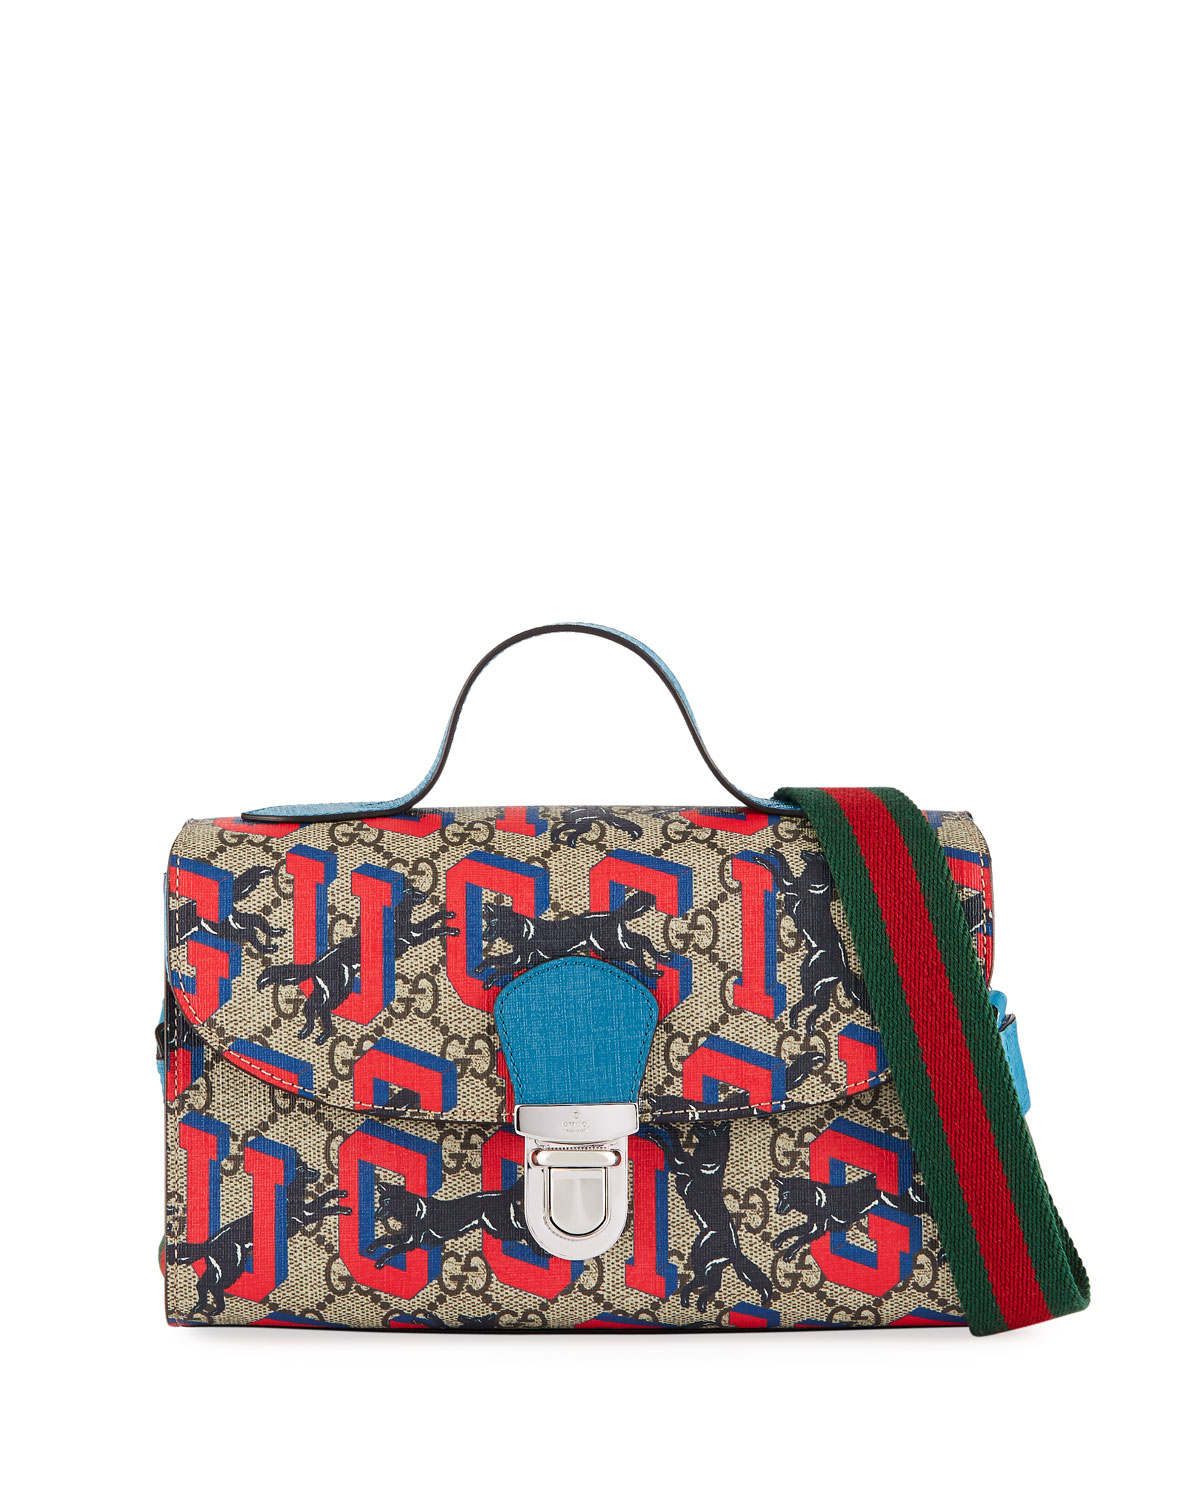 0956c986e14e Gucci Kids' Wolves-Print GG Supreme Top-Handle Flap Bag | Neiman Marcus